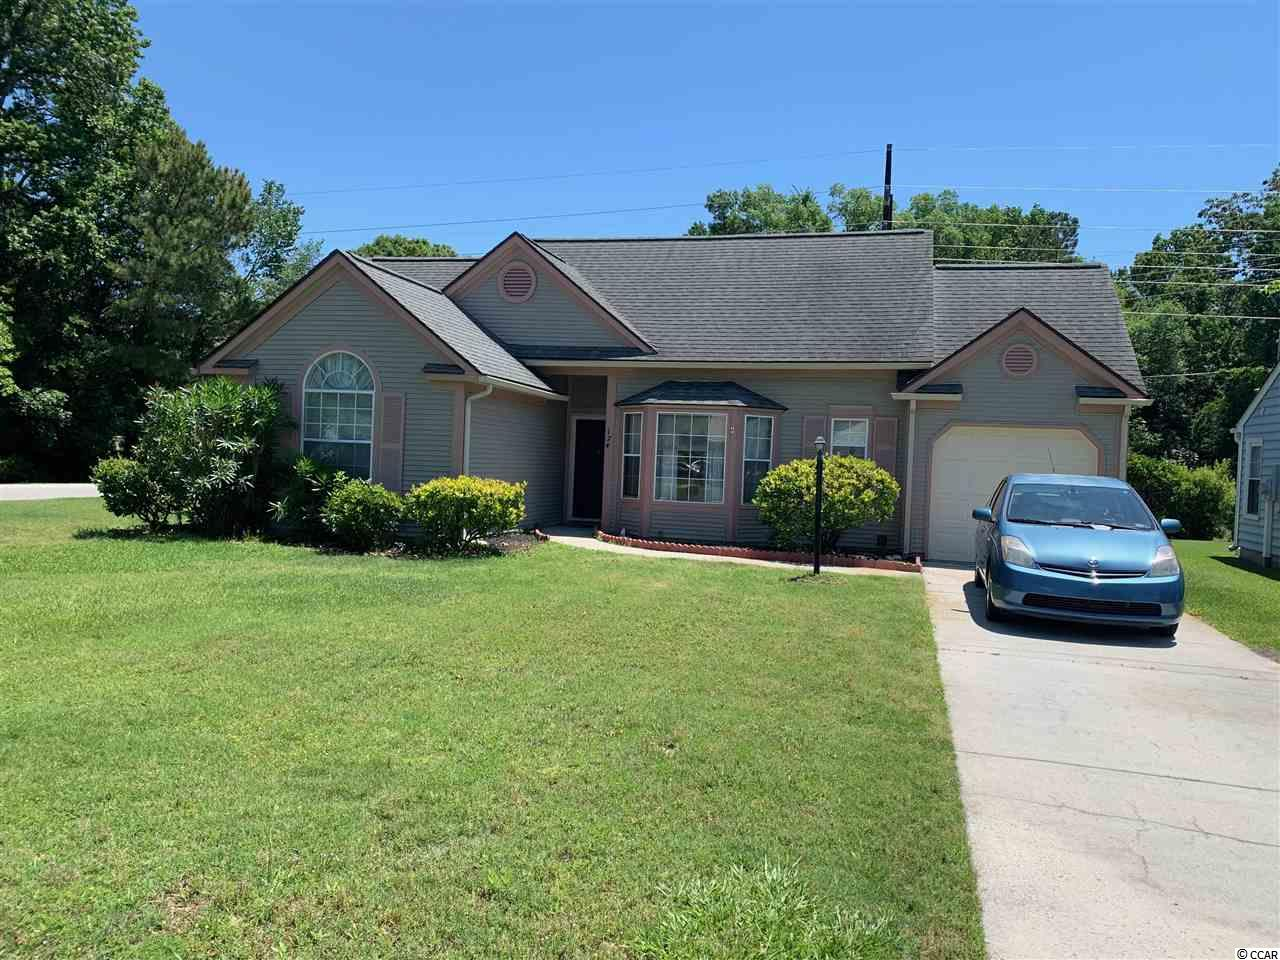 Wonderful 2 br, 2bath furnished home in 55+community. Close to Tennis courts, club house and Pool. Enjoy golf cart to the beach, shopping and restaurants. Enjoy large kitchen, Living room, Carolina room, Large bedrooms and a dinning room. The separate laundry room and garage gives extra storage. A perfect beach home!